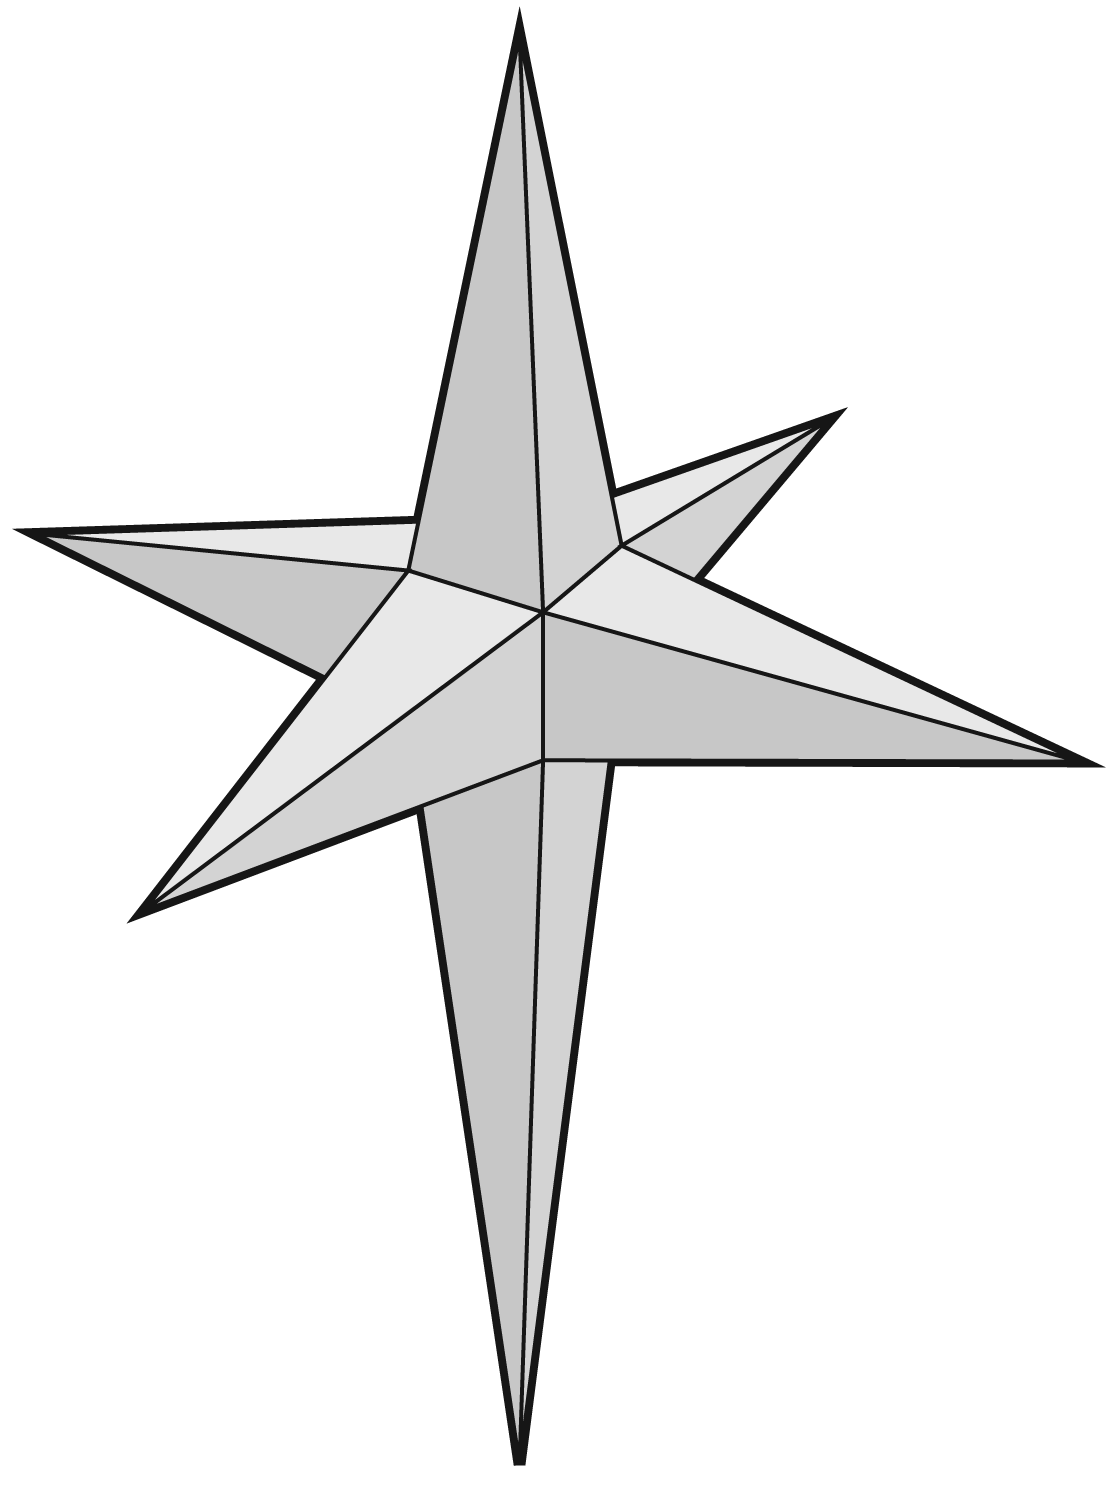 Sparkle clipart 4 point star, Picture #2066878 sparkle.